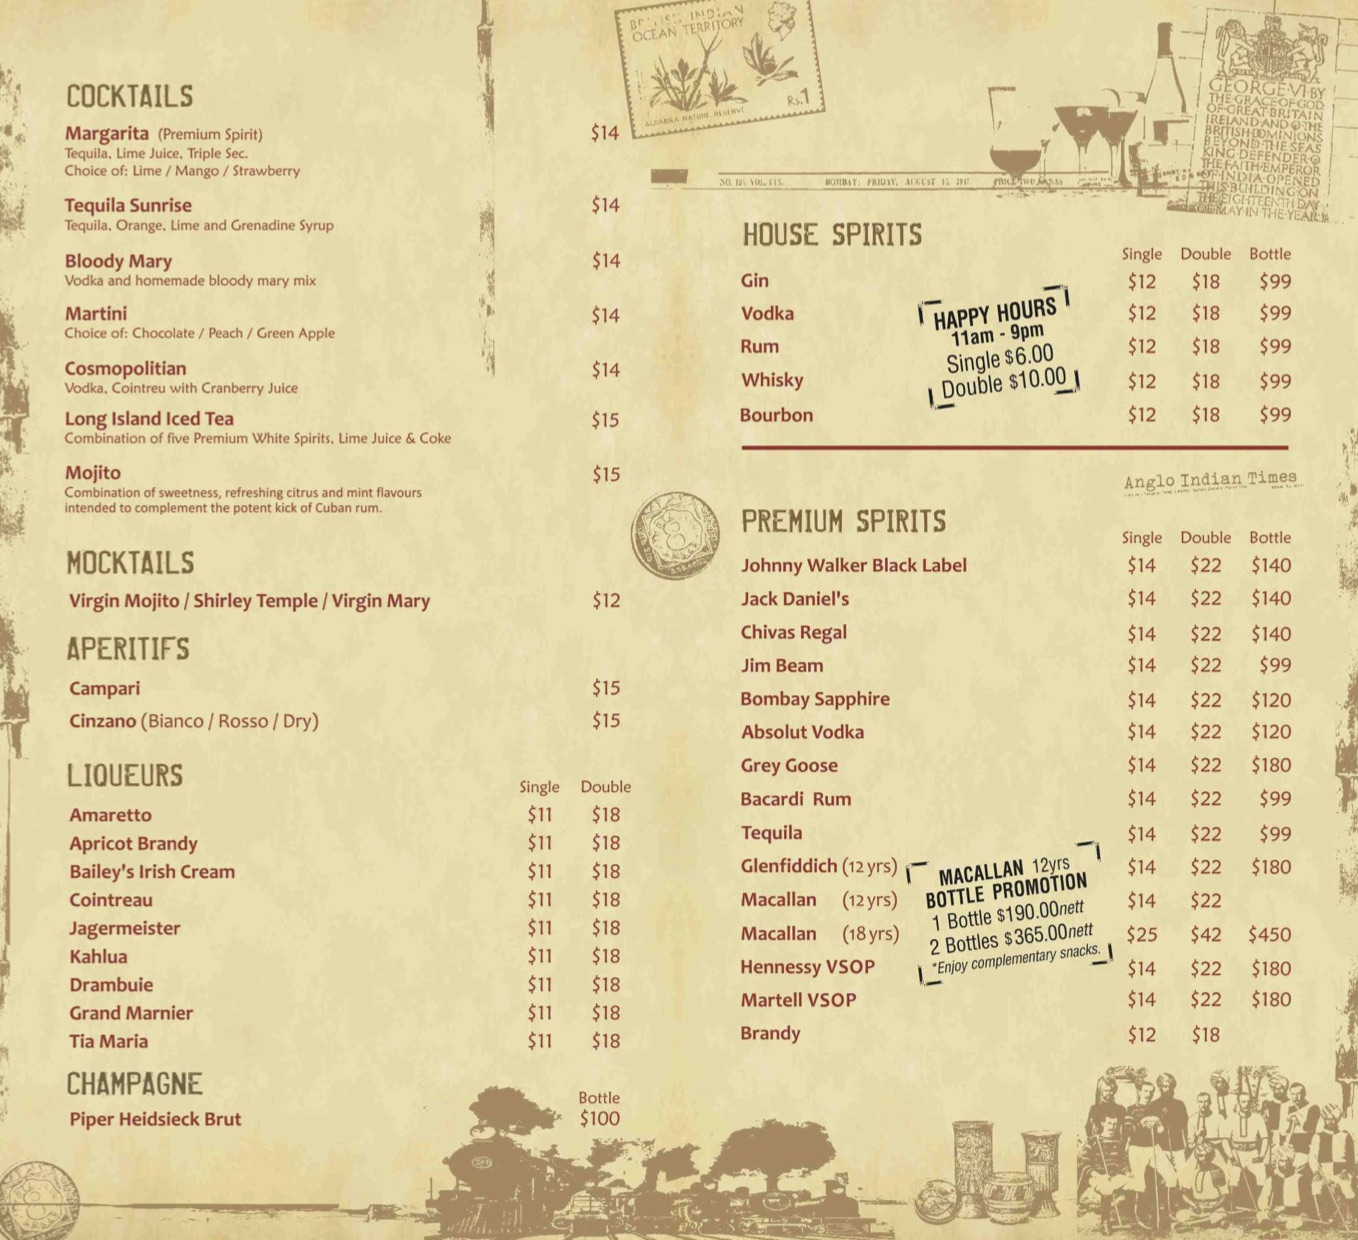 Angli Indian Cafe & Bar - Beverages Menu Pg2 - TREAT